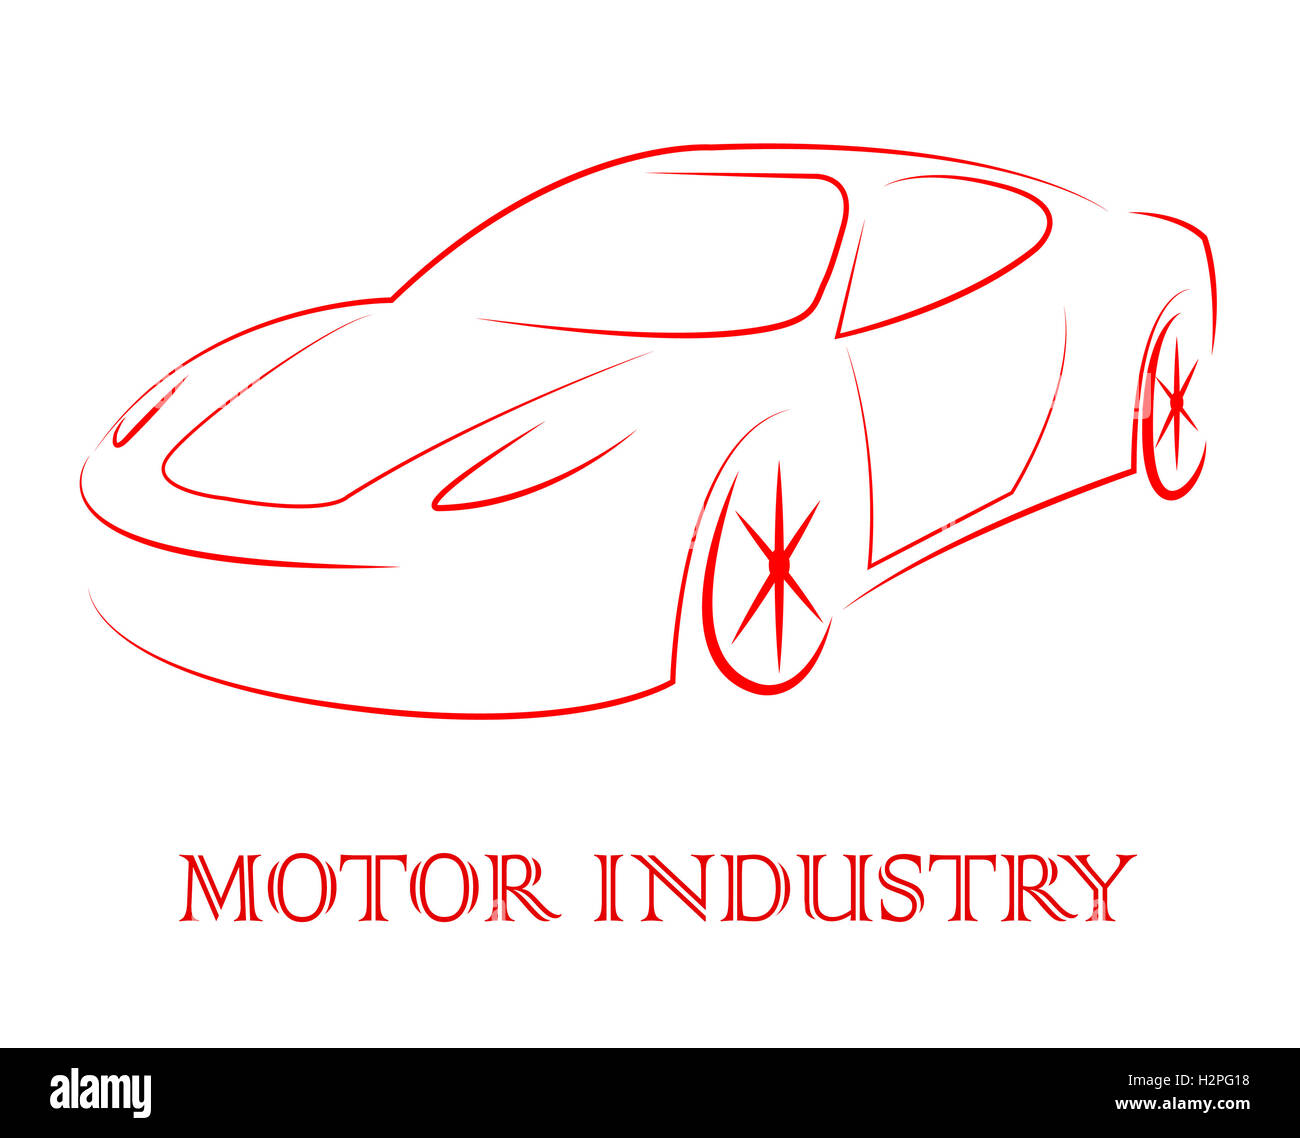 Motor Industry Representing Industries Manufacture And Automobile - Stock Image